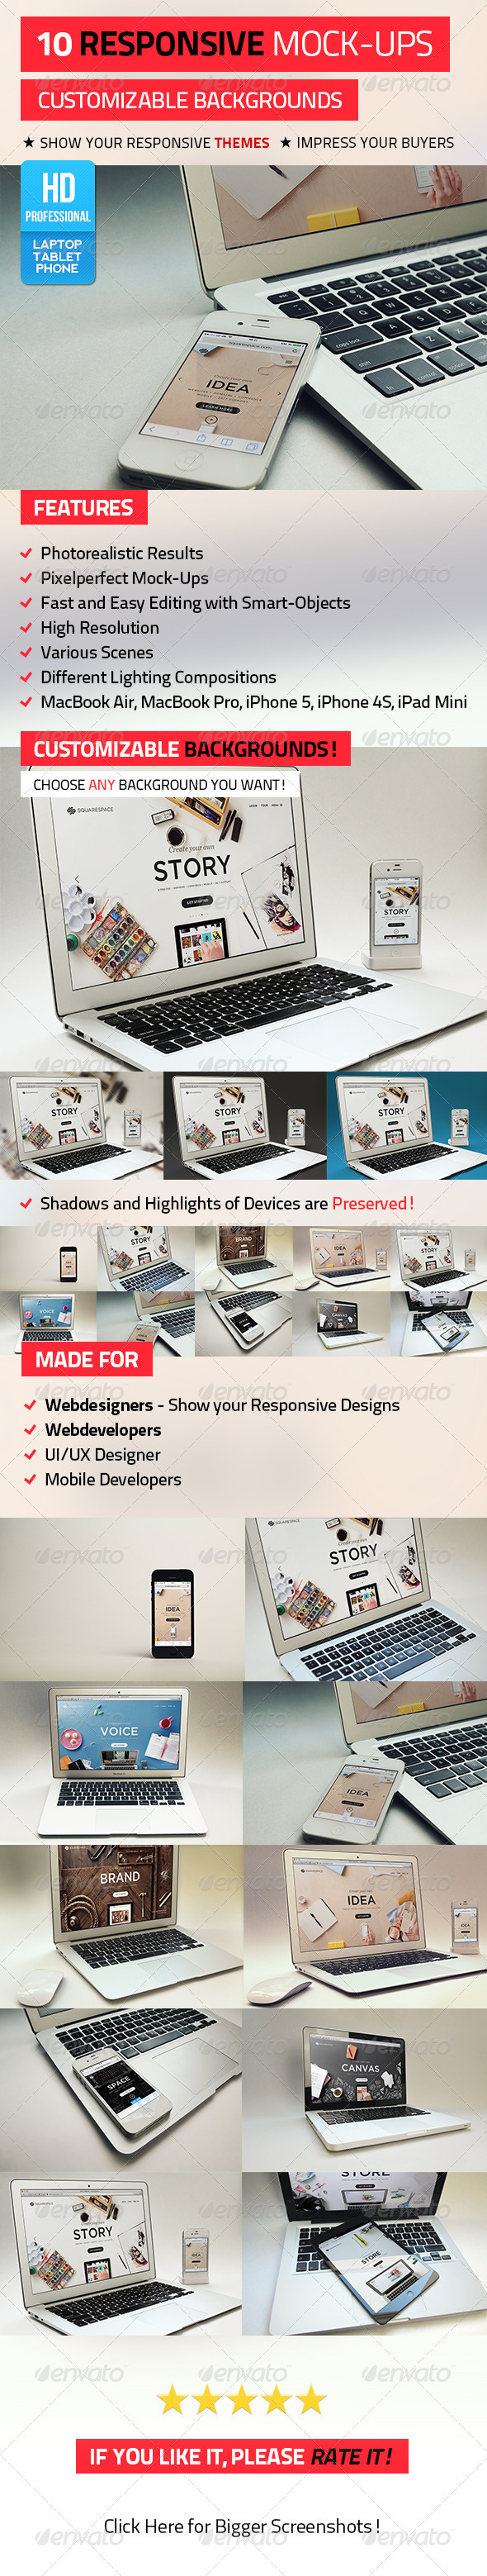 10 Responsive Mock-Ups - Displays Product Mock-Ups